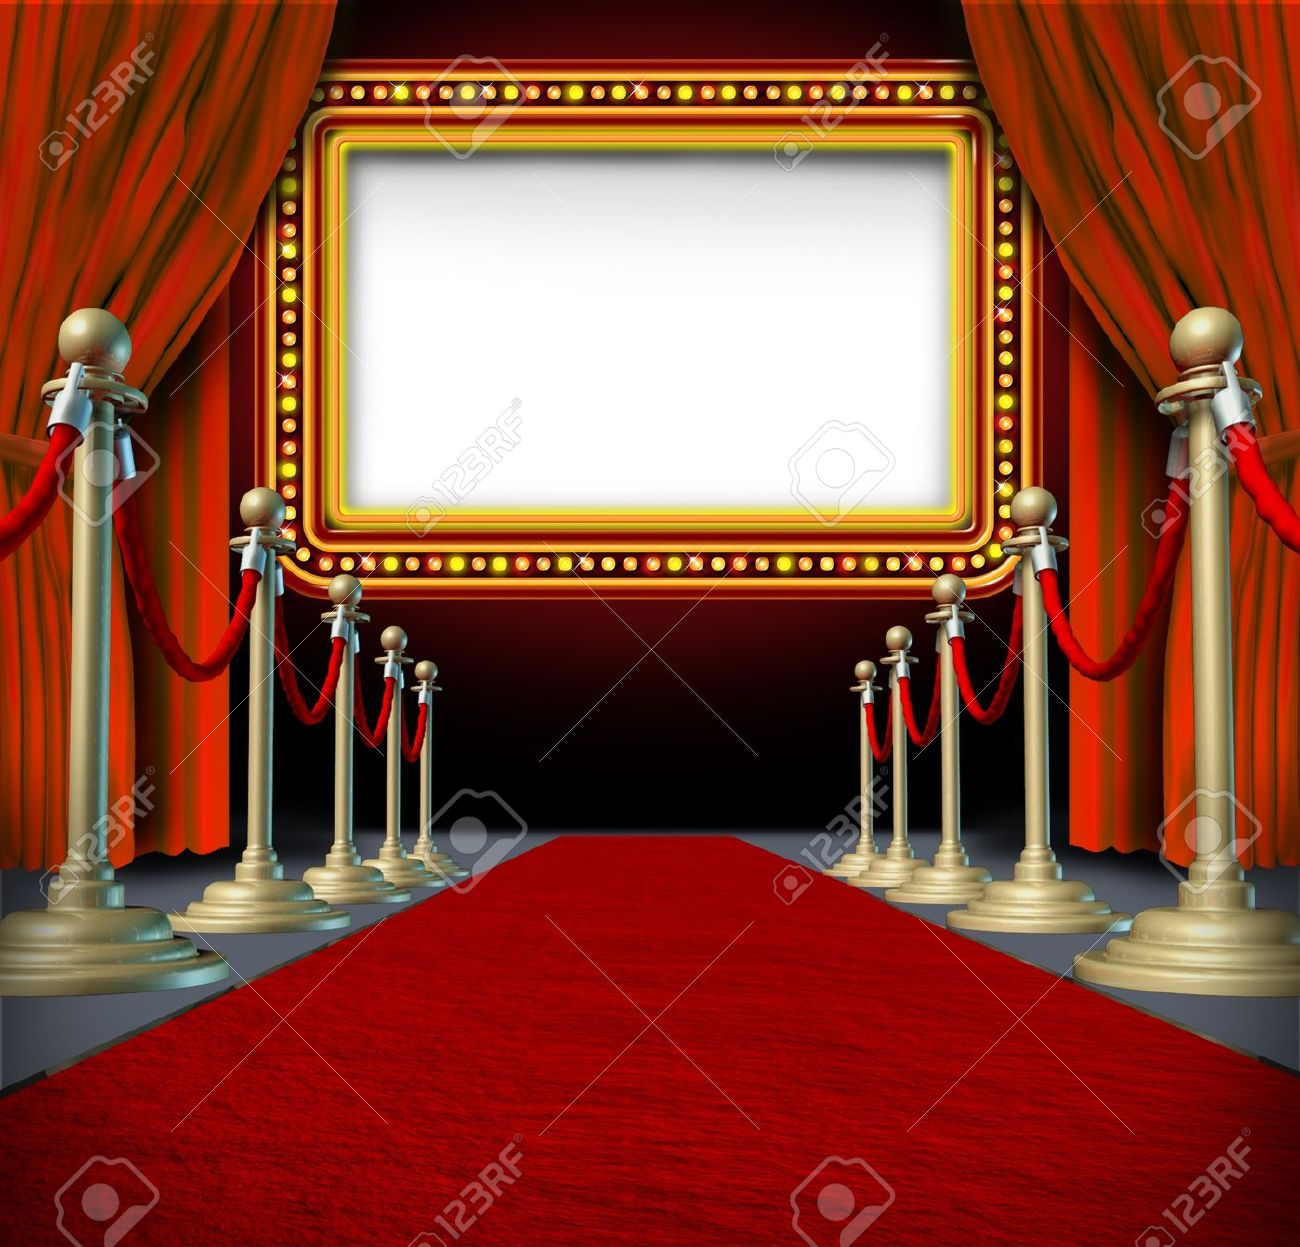 Empty stage curtains with lights - Movie And Theatre Marquee Blank Sign With Elegant Velvet Curtains And A Red Carpet With Gold